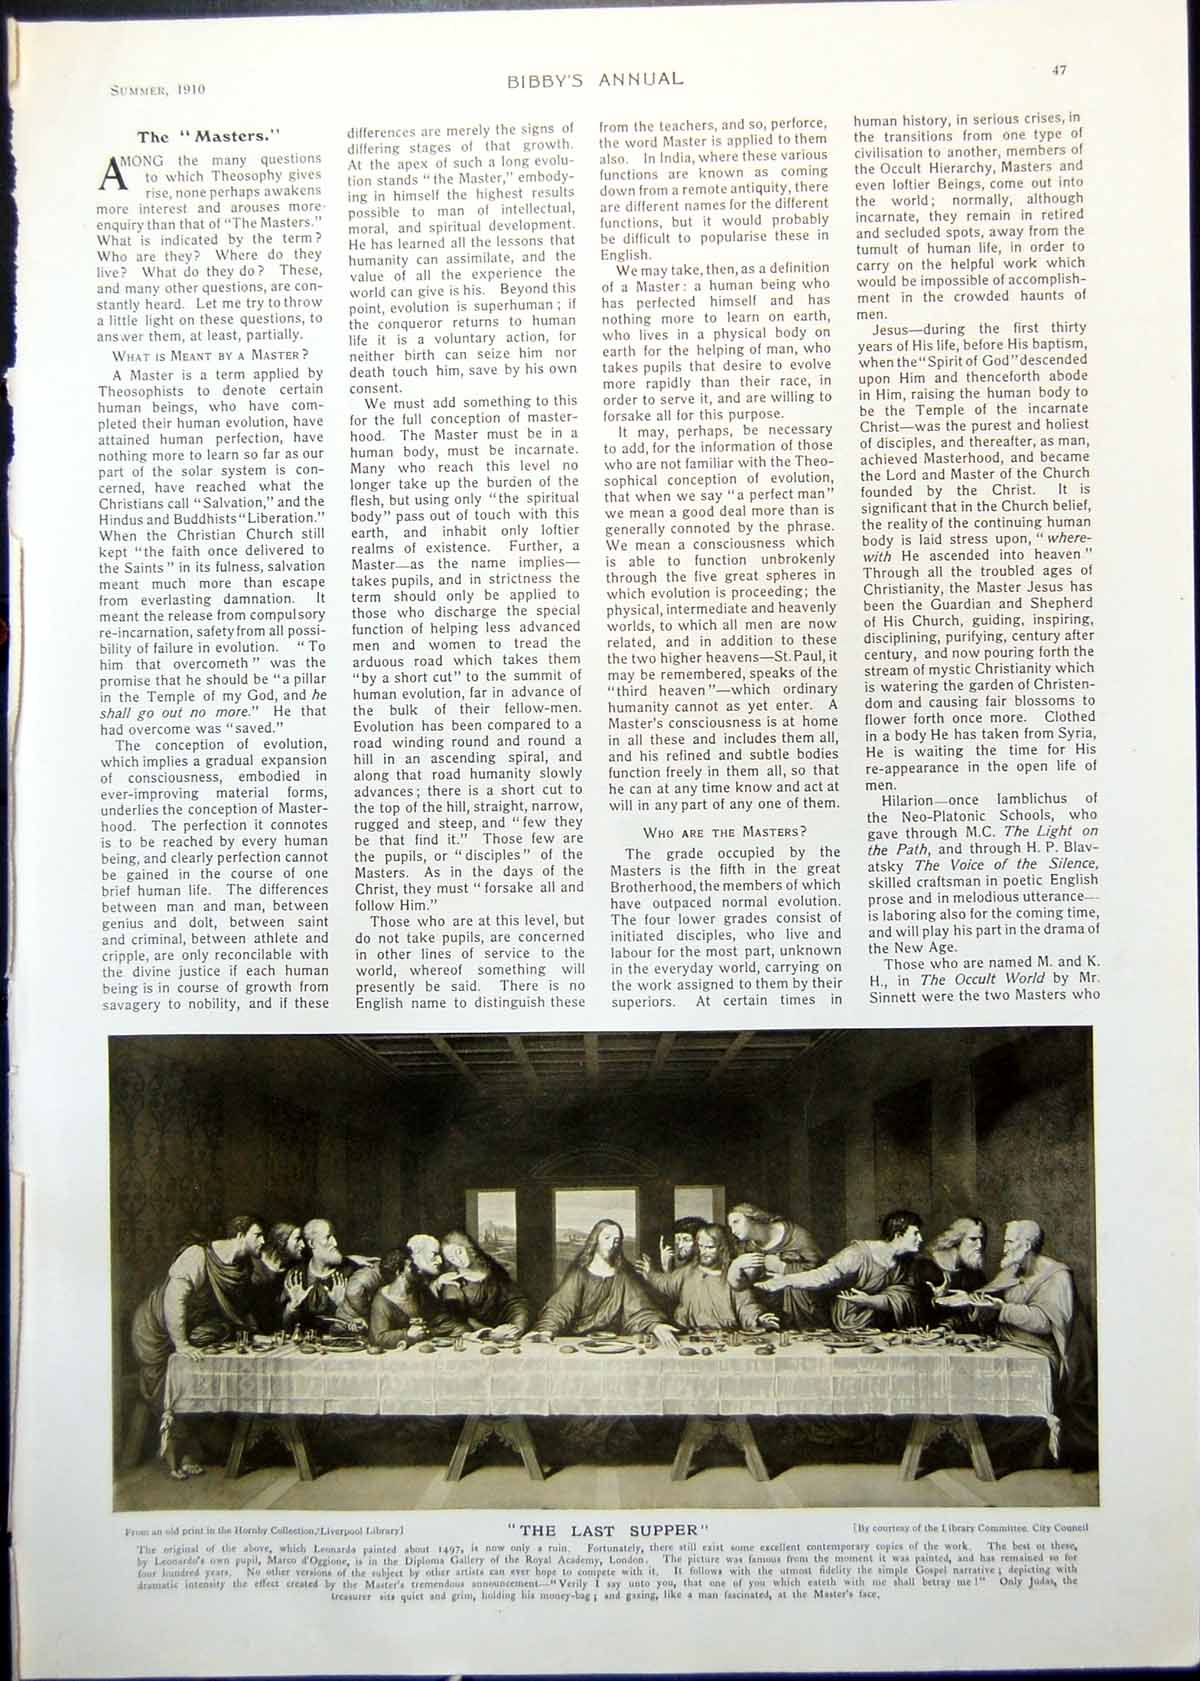 Old Antique Print The Last Supper Caught Out Cn Nemy Boat Stormy Sea 1910 20th